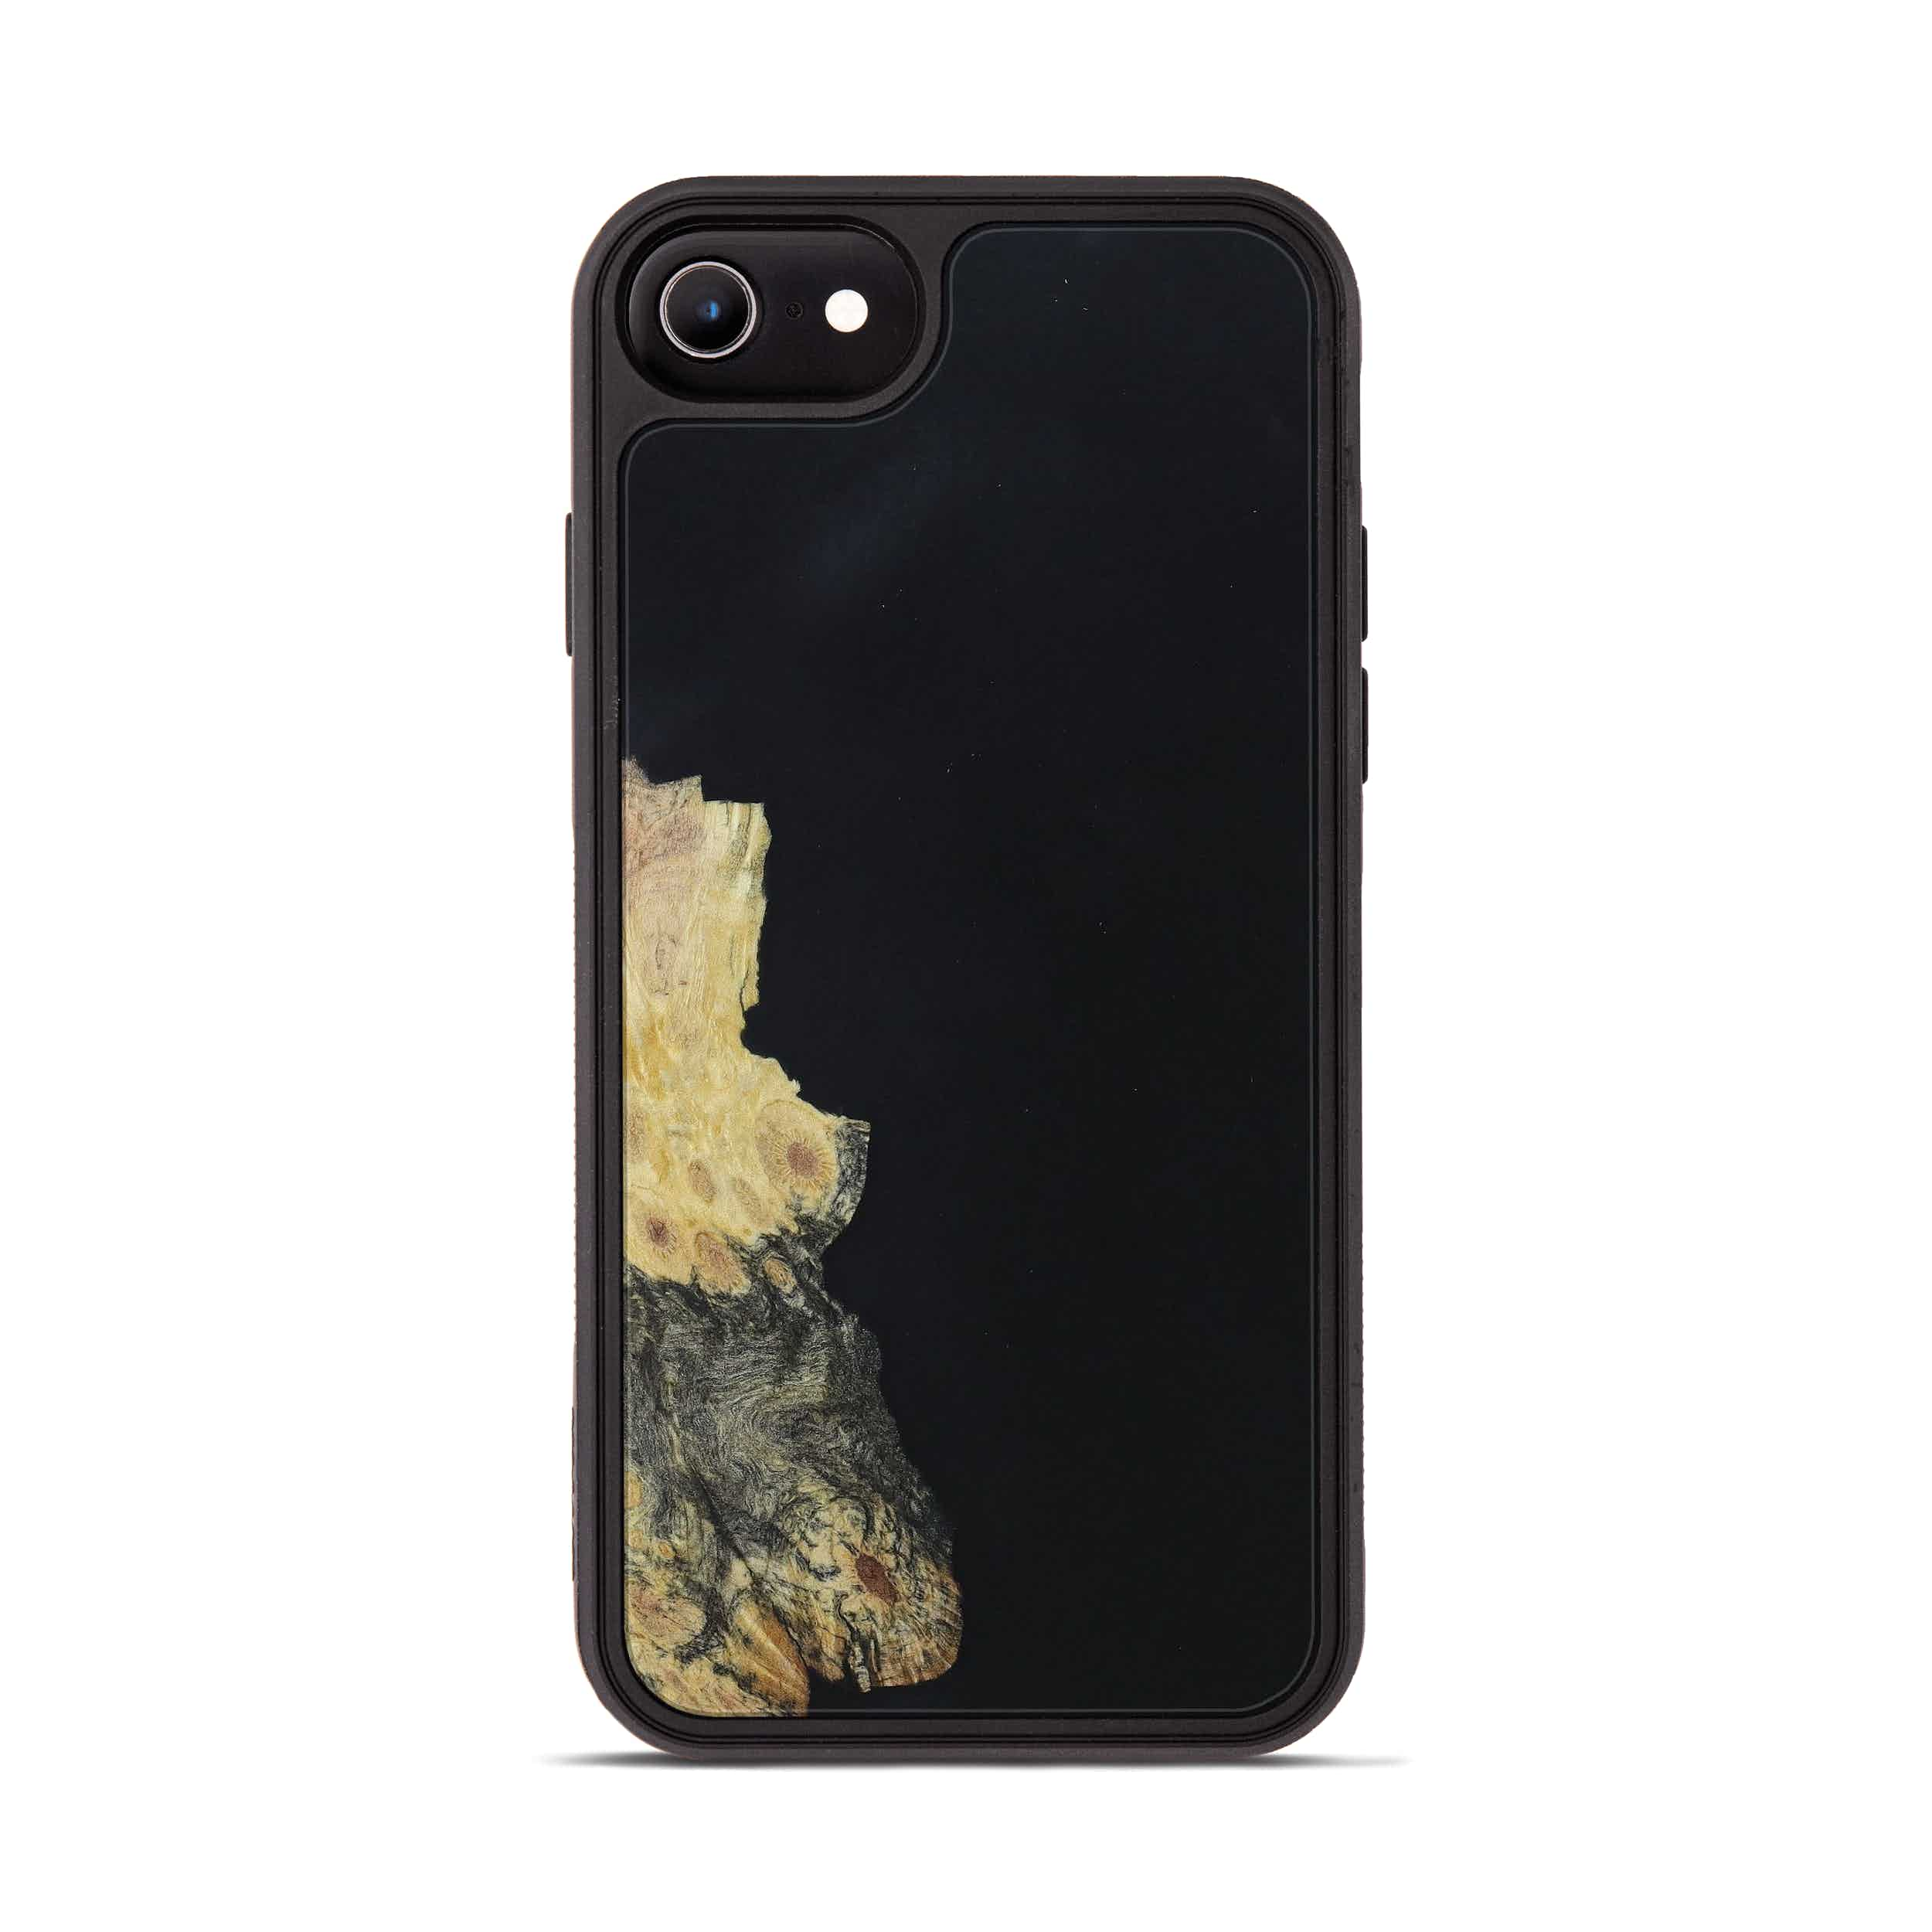 iPhone 6s Wood+Resin Phone Case - Iona (Pure Black, 397842)